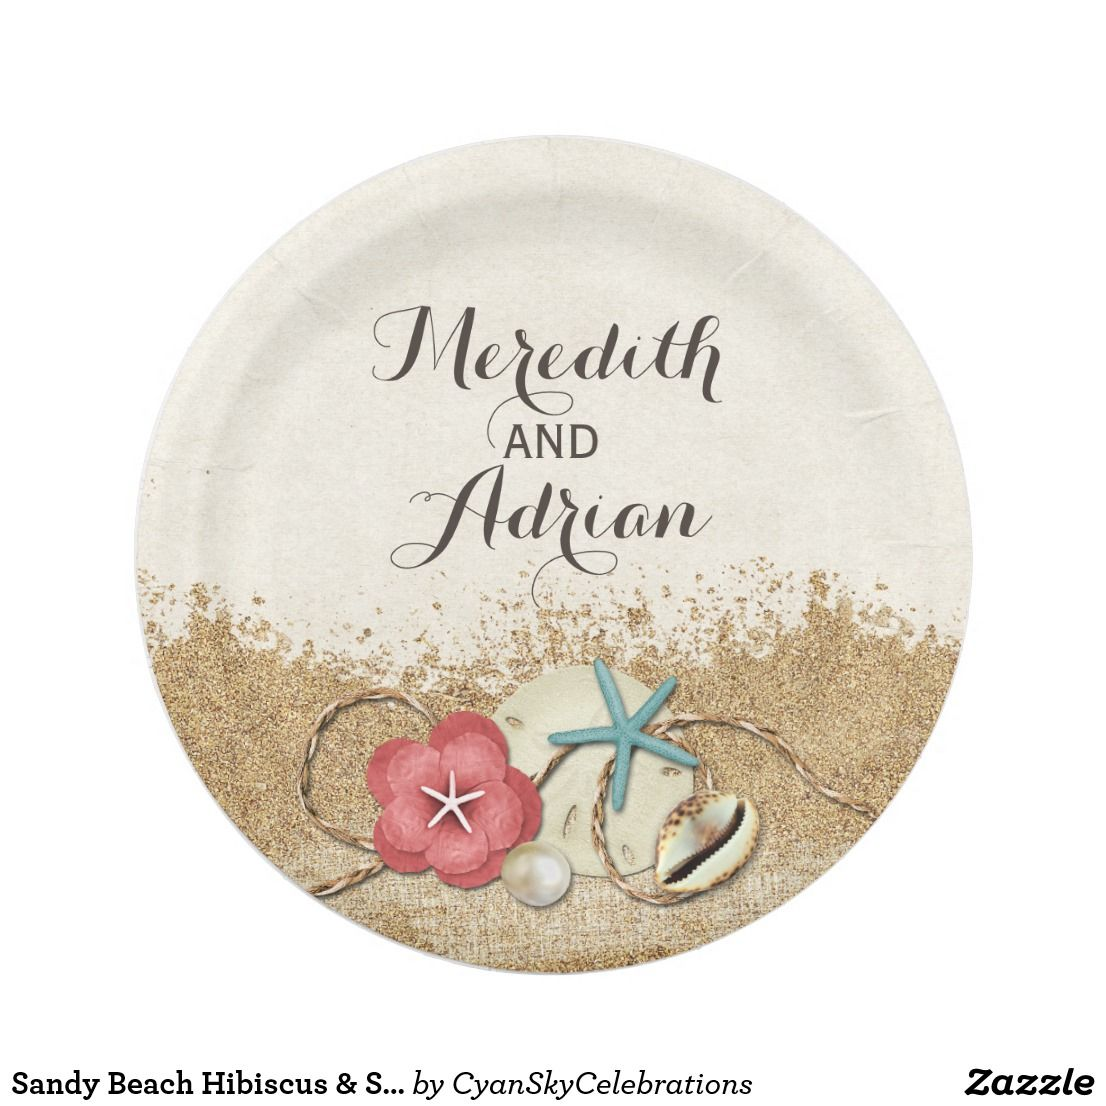 Sandy Beach Hibiscus \u0026 Shells Wedding Personalized Paper Plate by CyanSkyCelebrations on Zazzle  sc 1 st  Pinterest : beach paper plates - pezcame.com